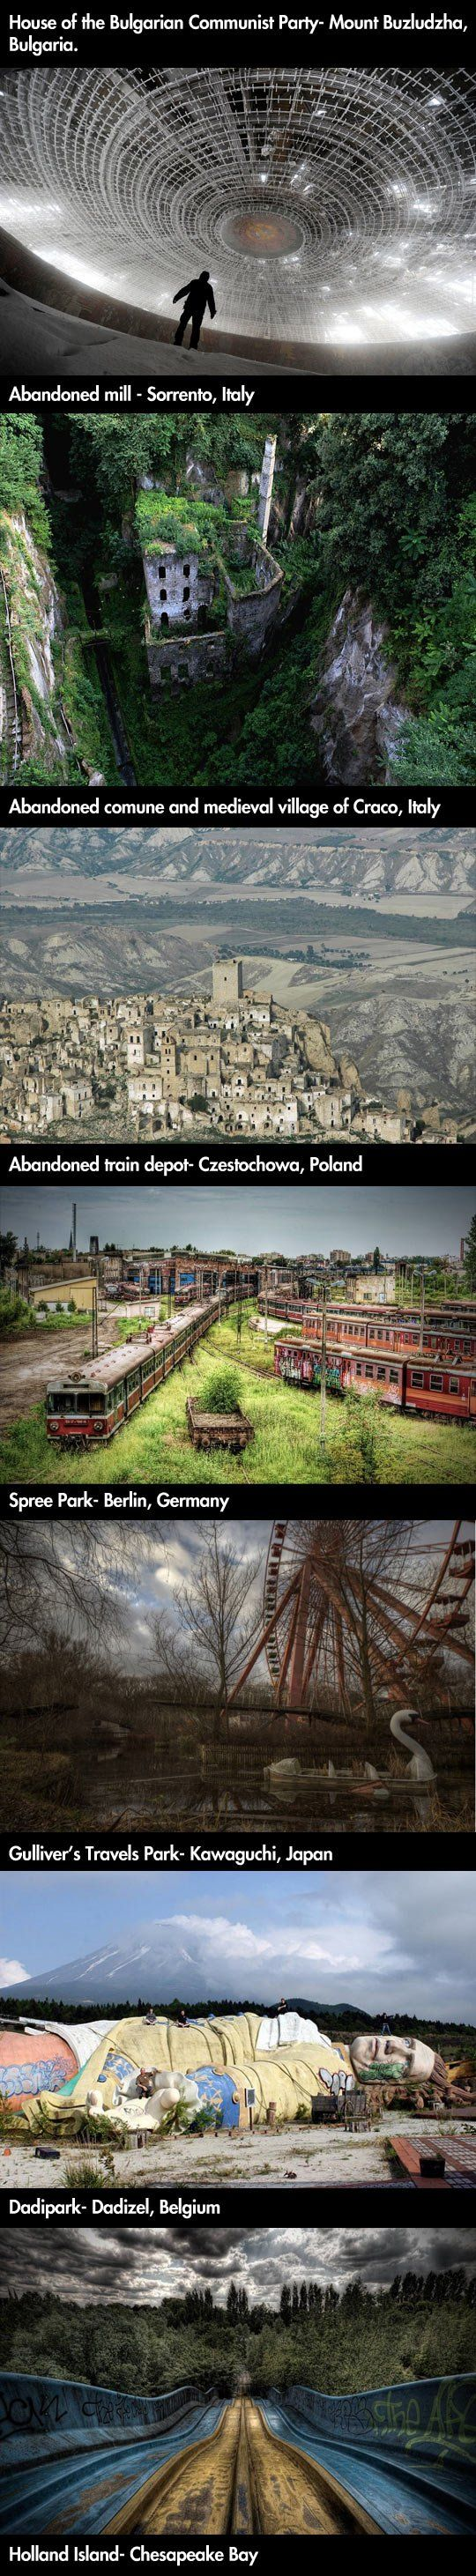 Amazing abandoned places in the world… ...........I WANT TO SEE ALL!......................